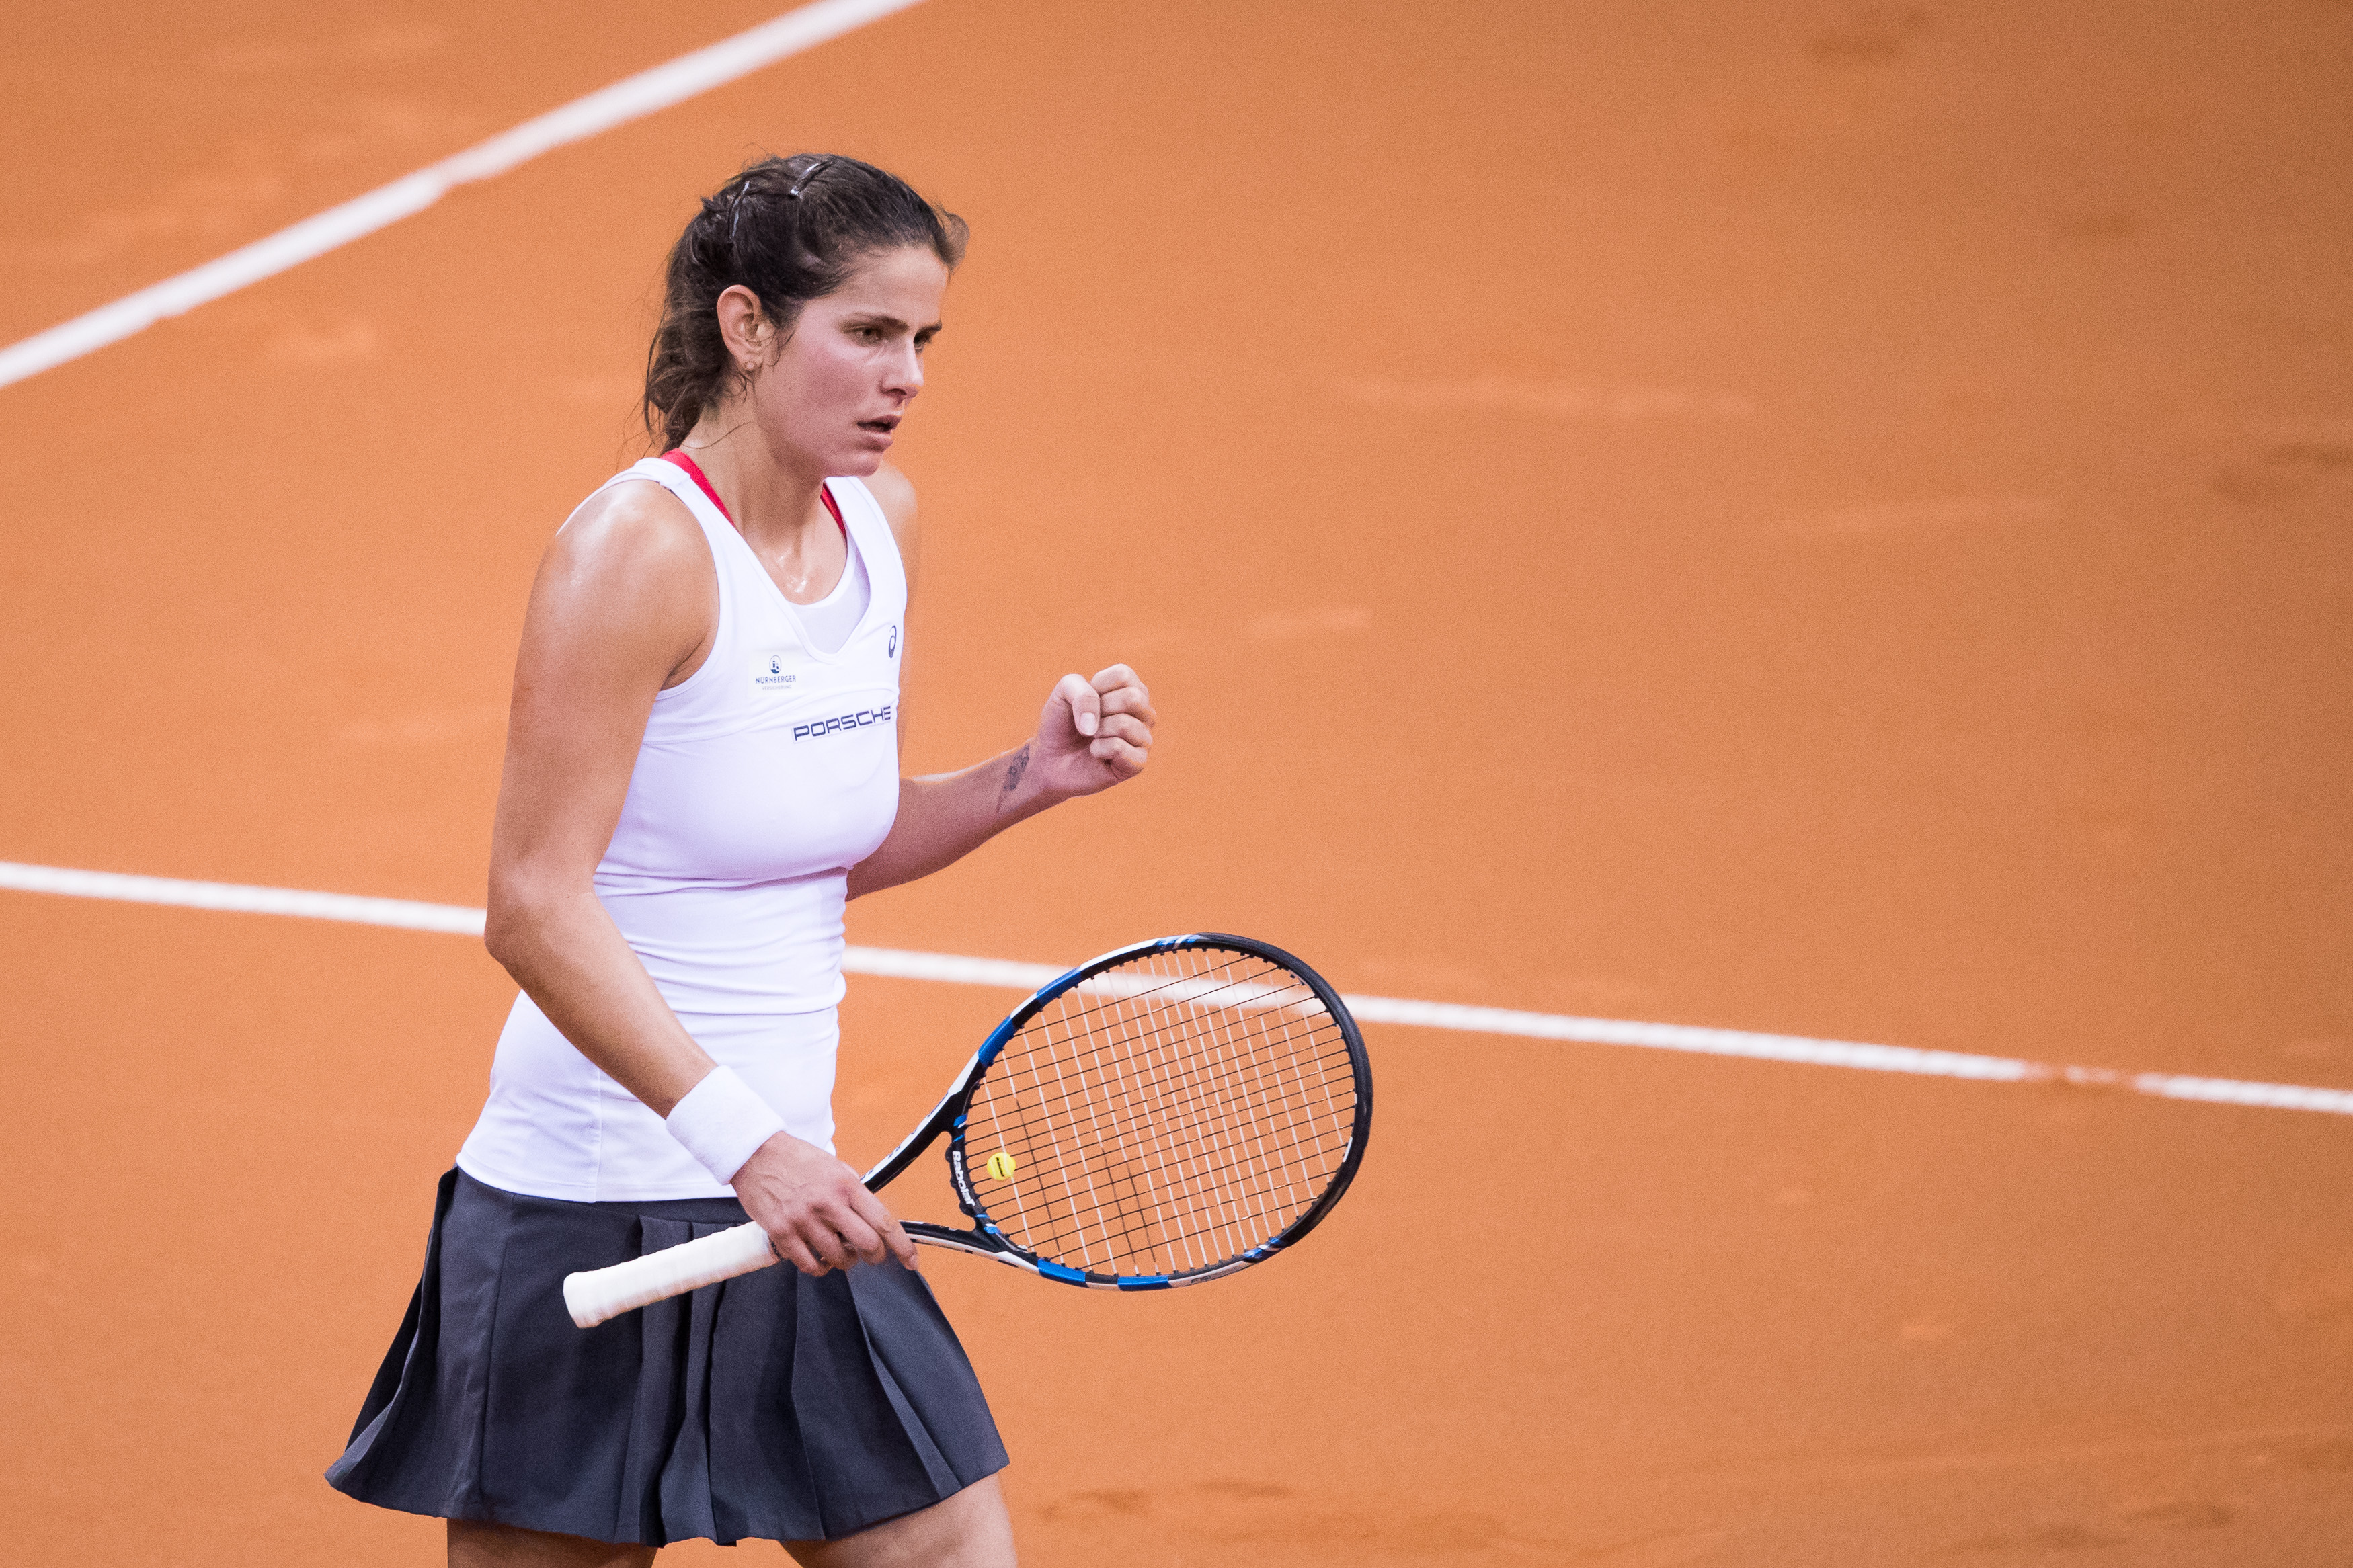 STUTTGART, GERMANY - APRIL 22: Julia Goerges of Germany celebrates a point against Elina Svitolina of Ukraine during the FedCup World Group Play-Off Match between Germany and Ukraine at Porsche Arena on April 22, 2017 in Stuttgart, Germany. (Photo by Simon Hofmann/Bongarts/Getty Images)